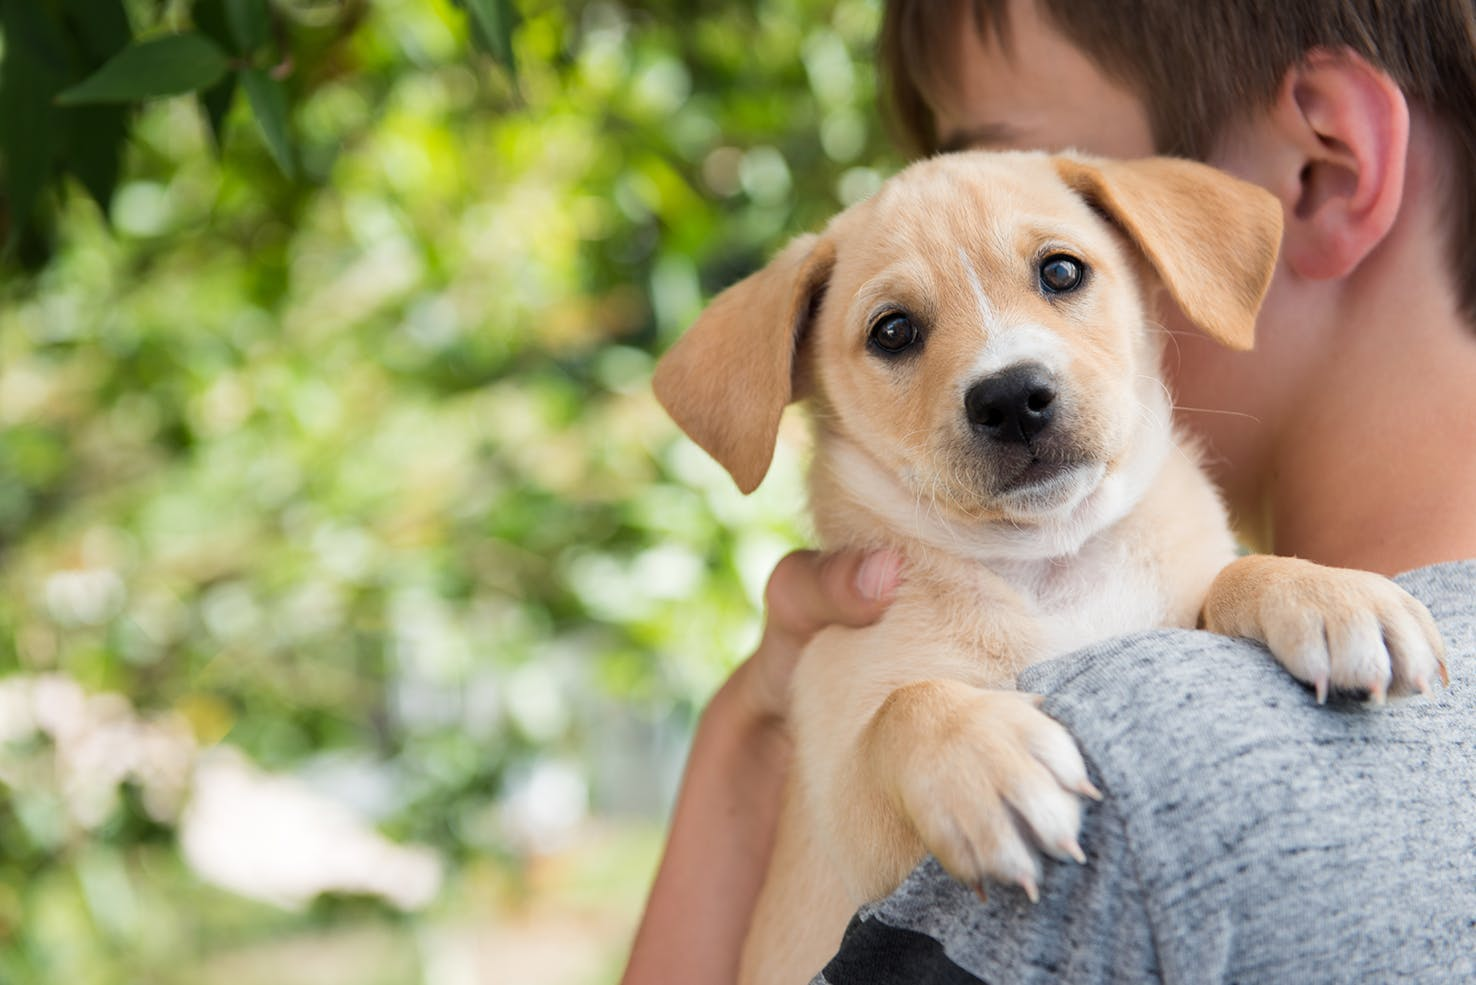 daily-wag-wag-and-adopt-a-petcom-team-up-to-introduce-more-people-to-the-joys-of-dog-parenthood-hero-image